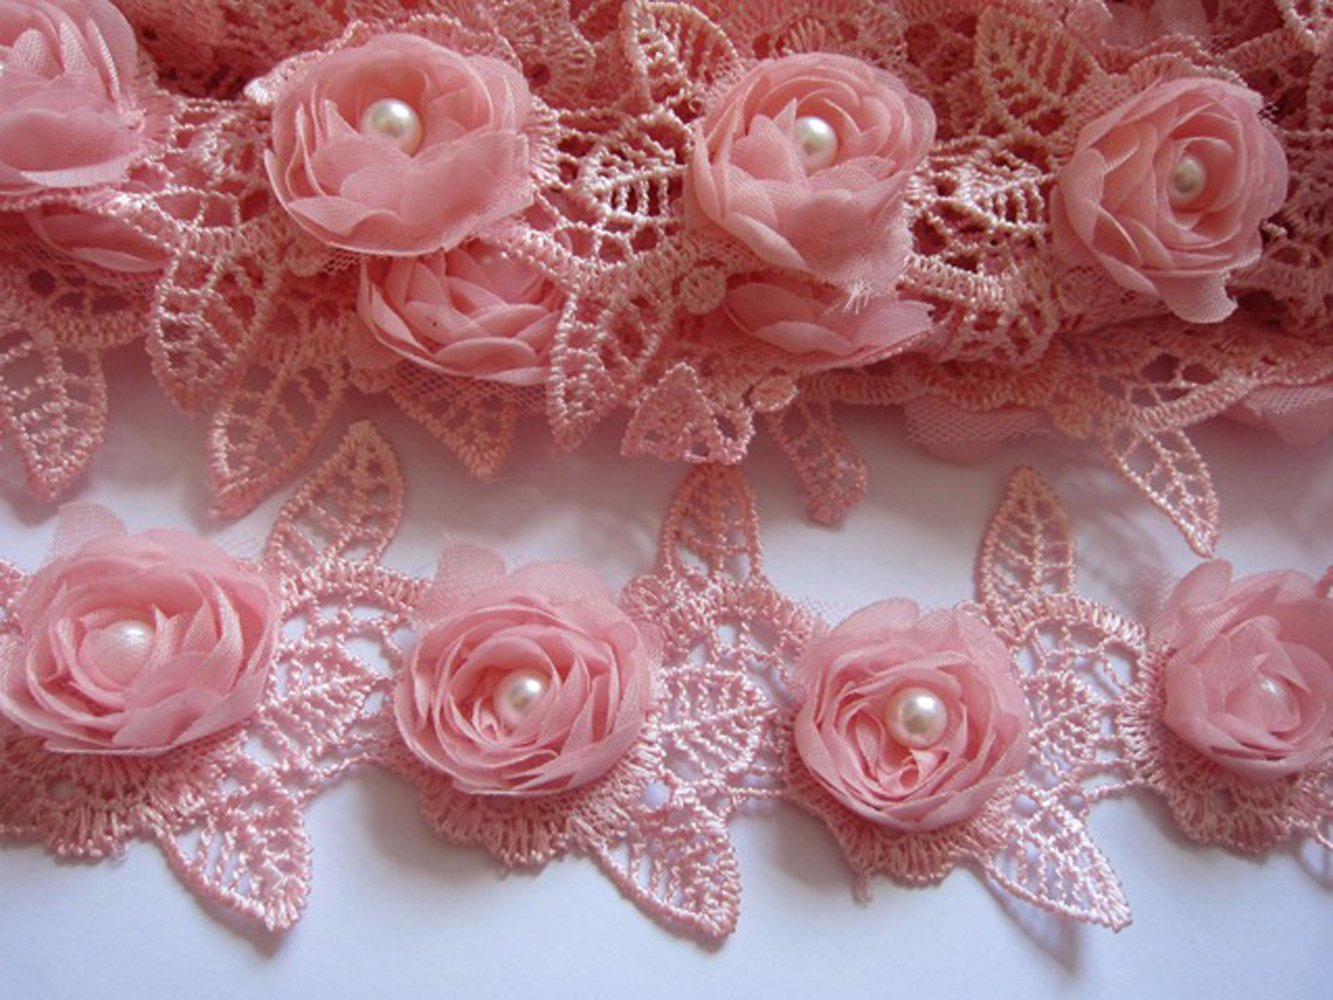 YYCRAFT Pack Of 2y Chiffon Rose 2.5 Lace Edge Trim Pearl Wedding Applique DIY Sewing Craft-White